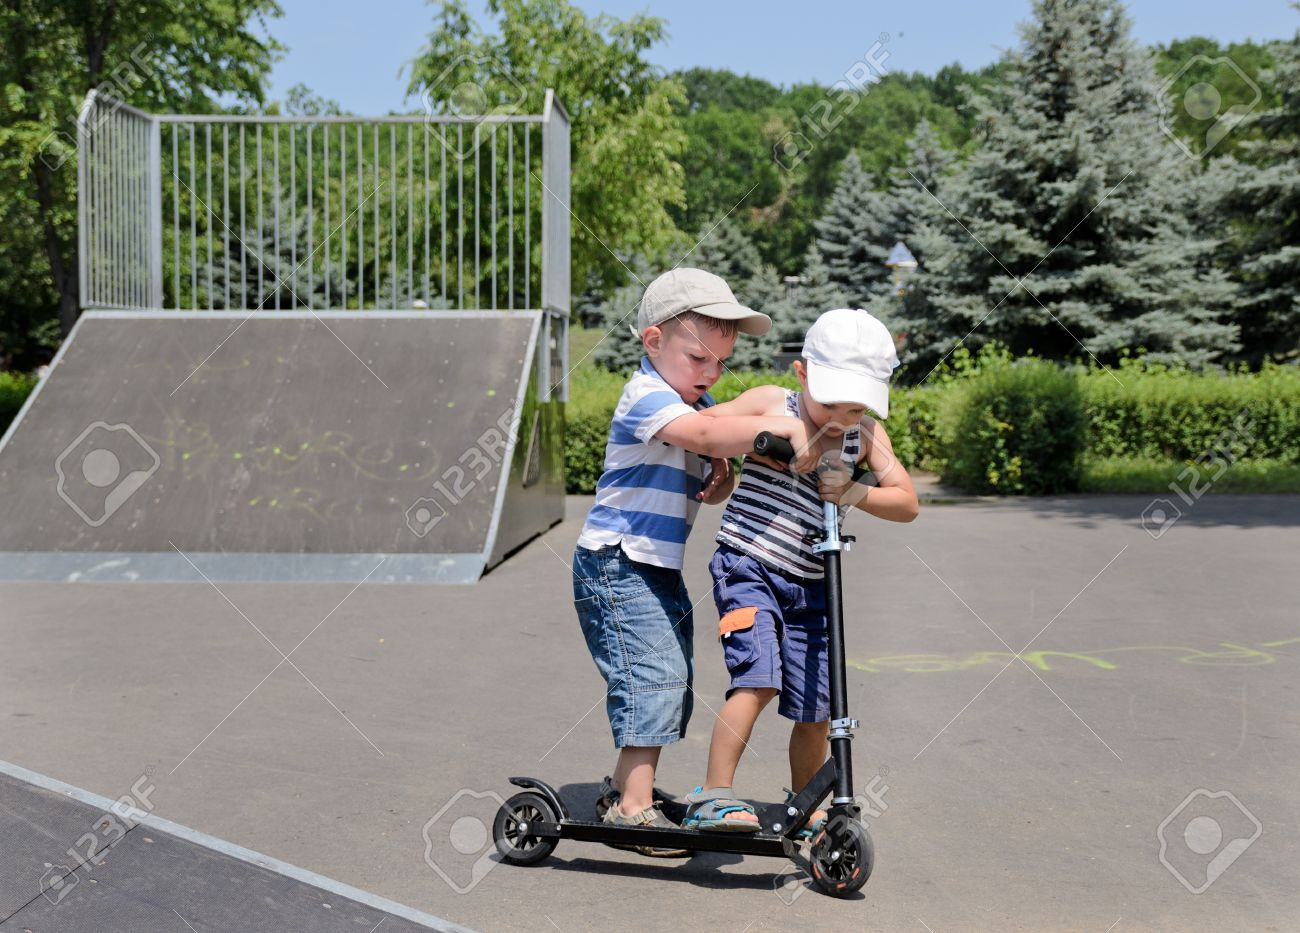 Two small boys standing arguing and fighting over who will get to ride a scooter in the skate park - 21329690